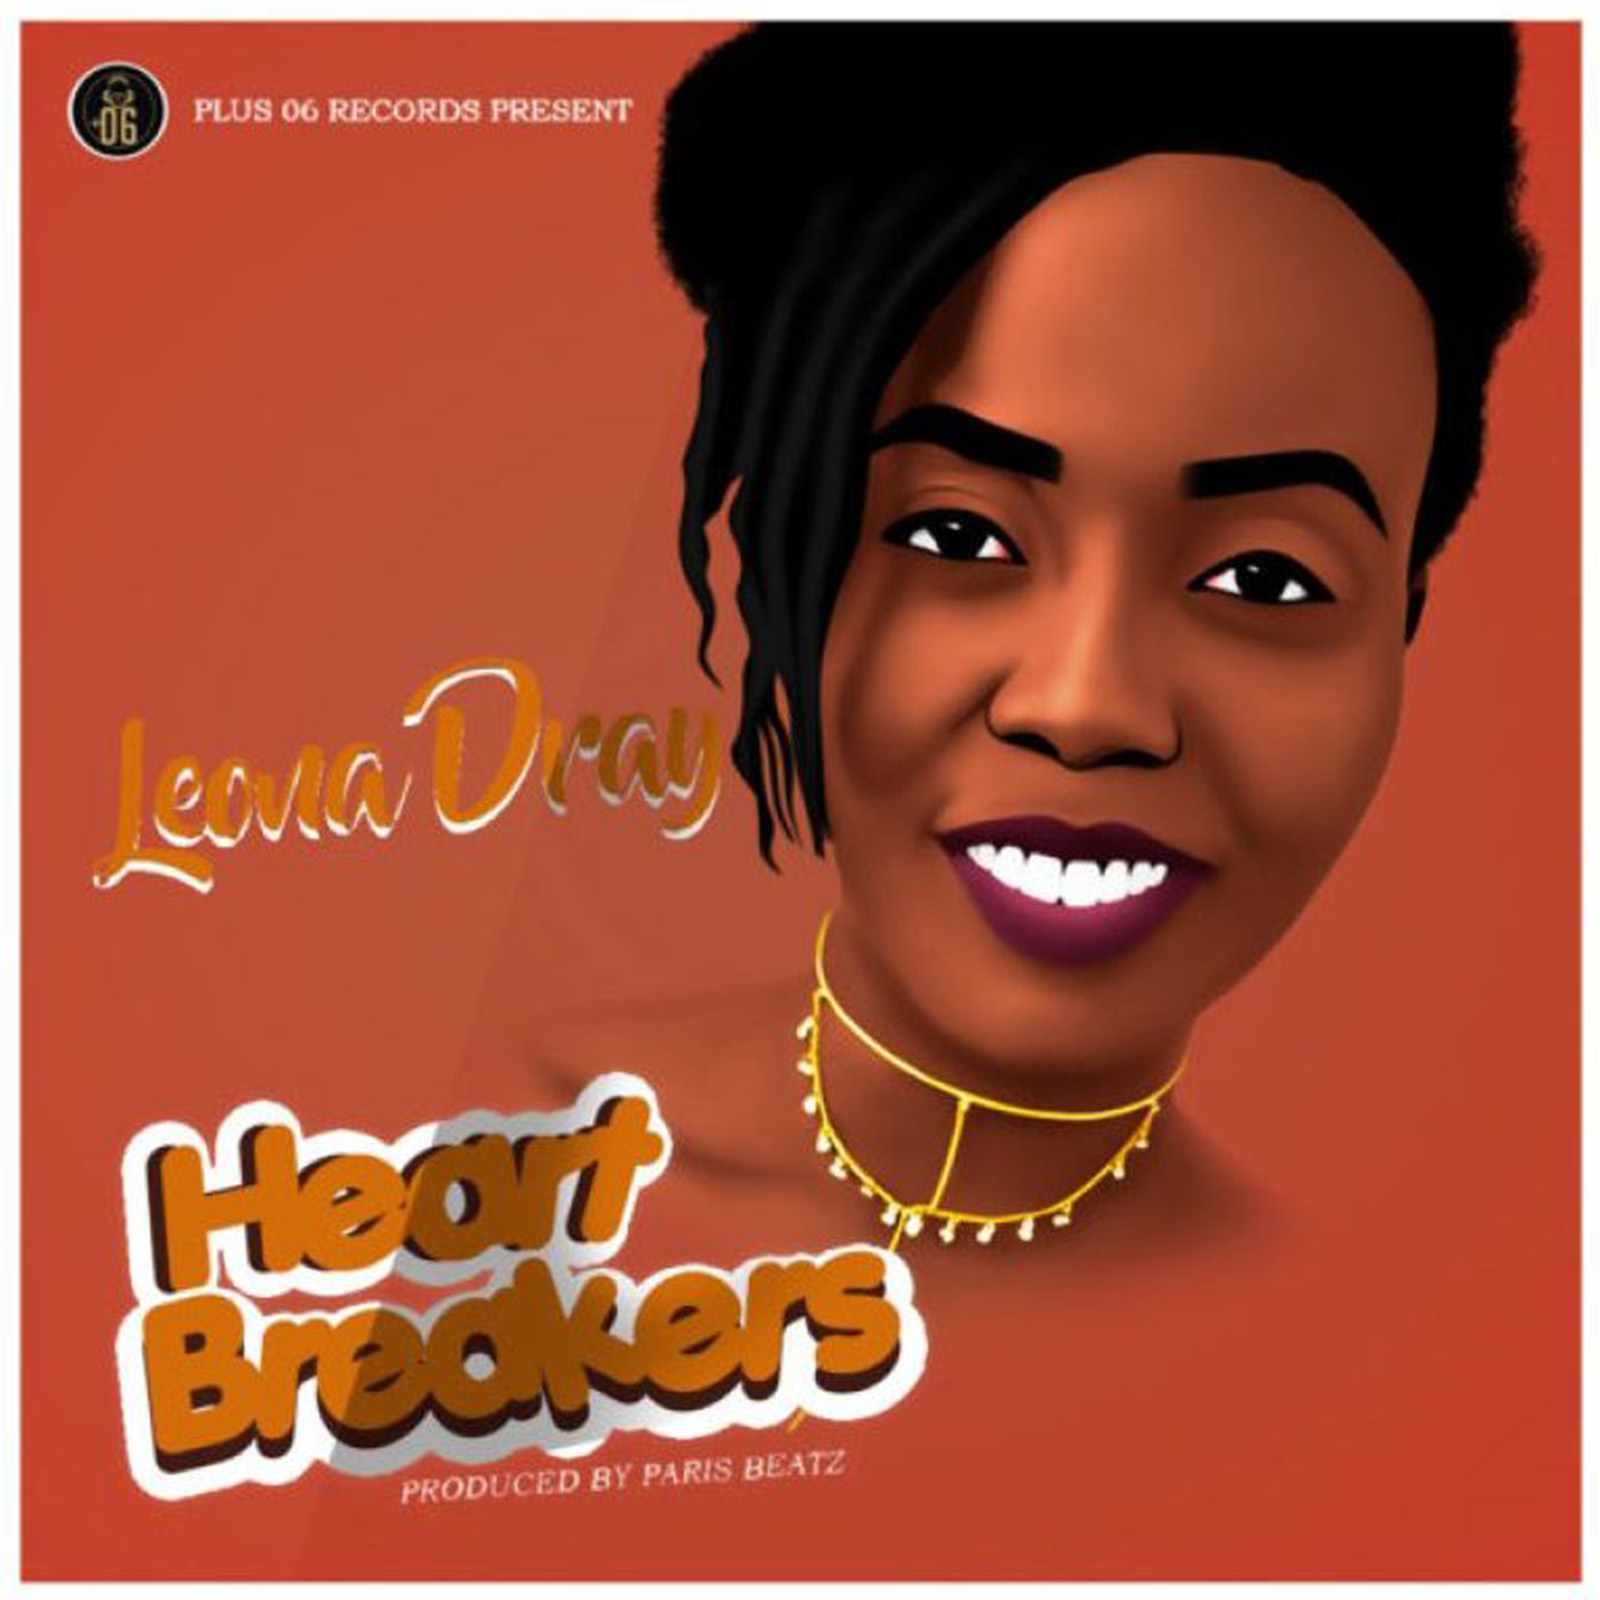 Heart Breakers by Leona Dray